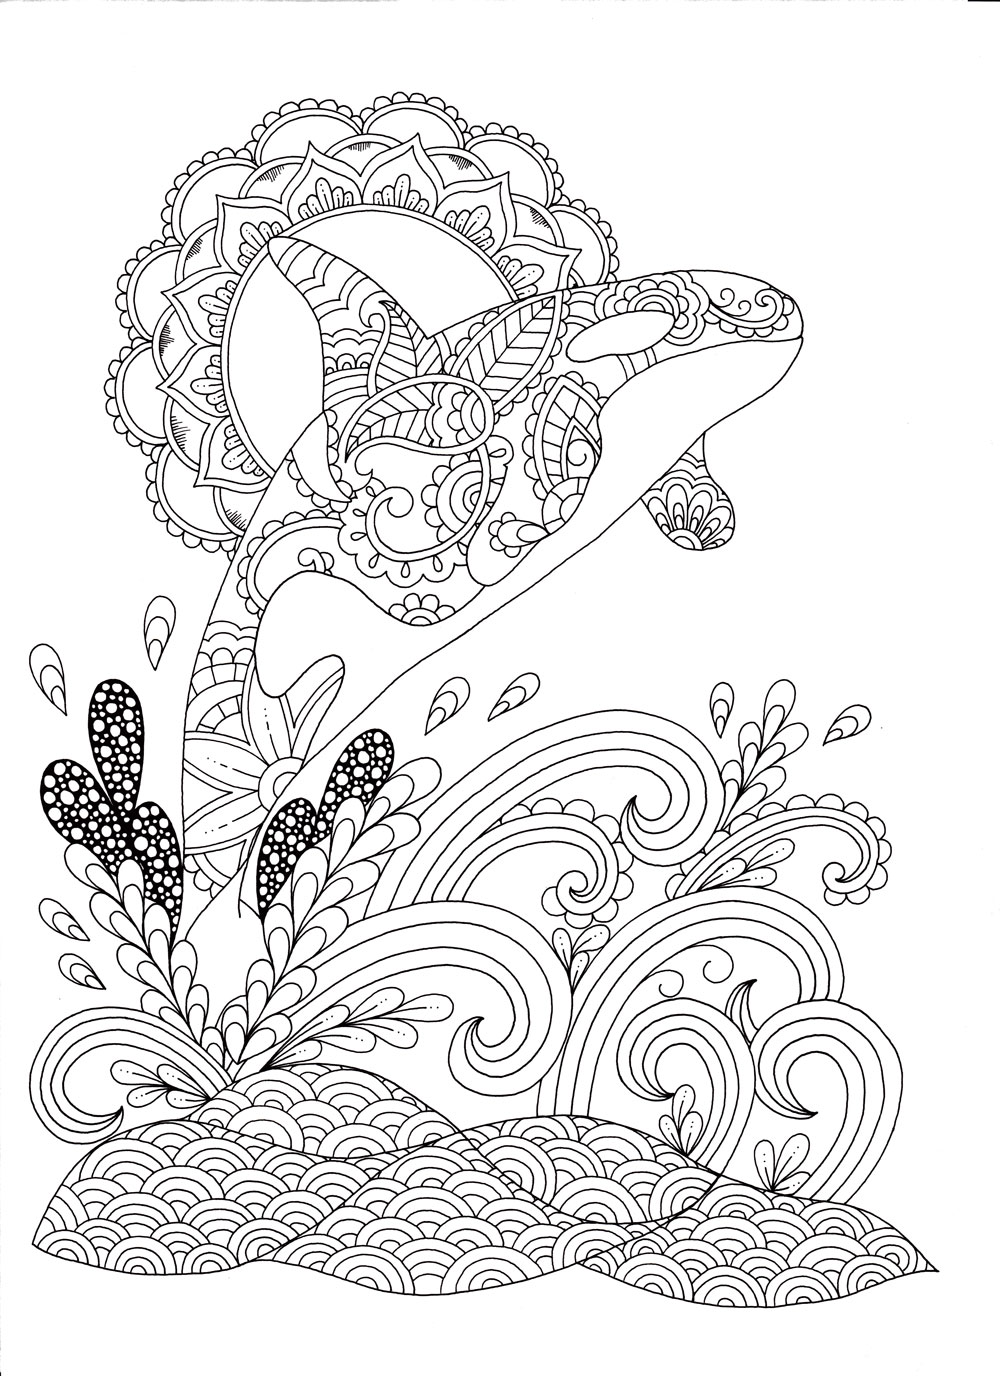 Stress relieving coloring - Ocean Coloring Page Exotic Animal Designs Stress Relieving Adult Coloring Book By